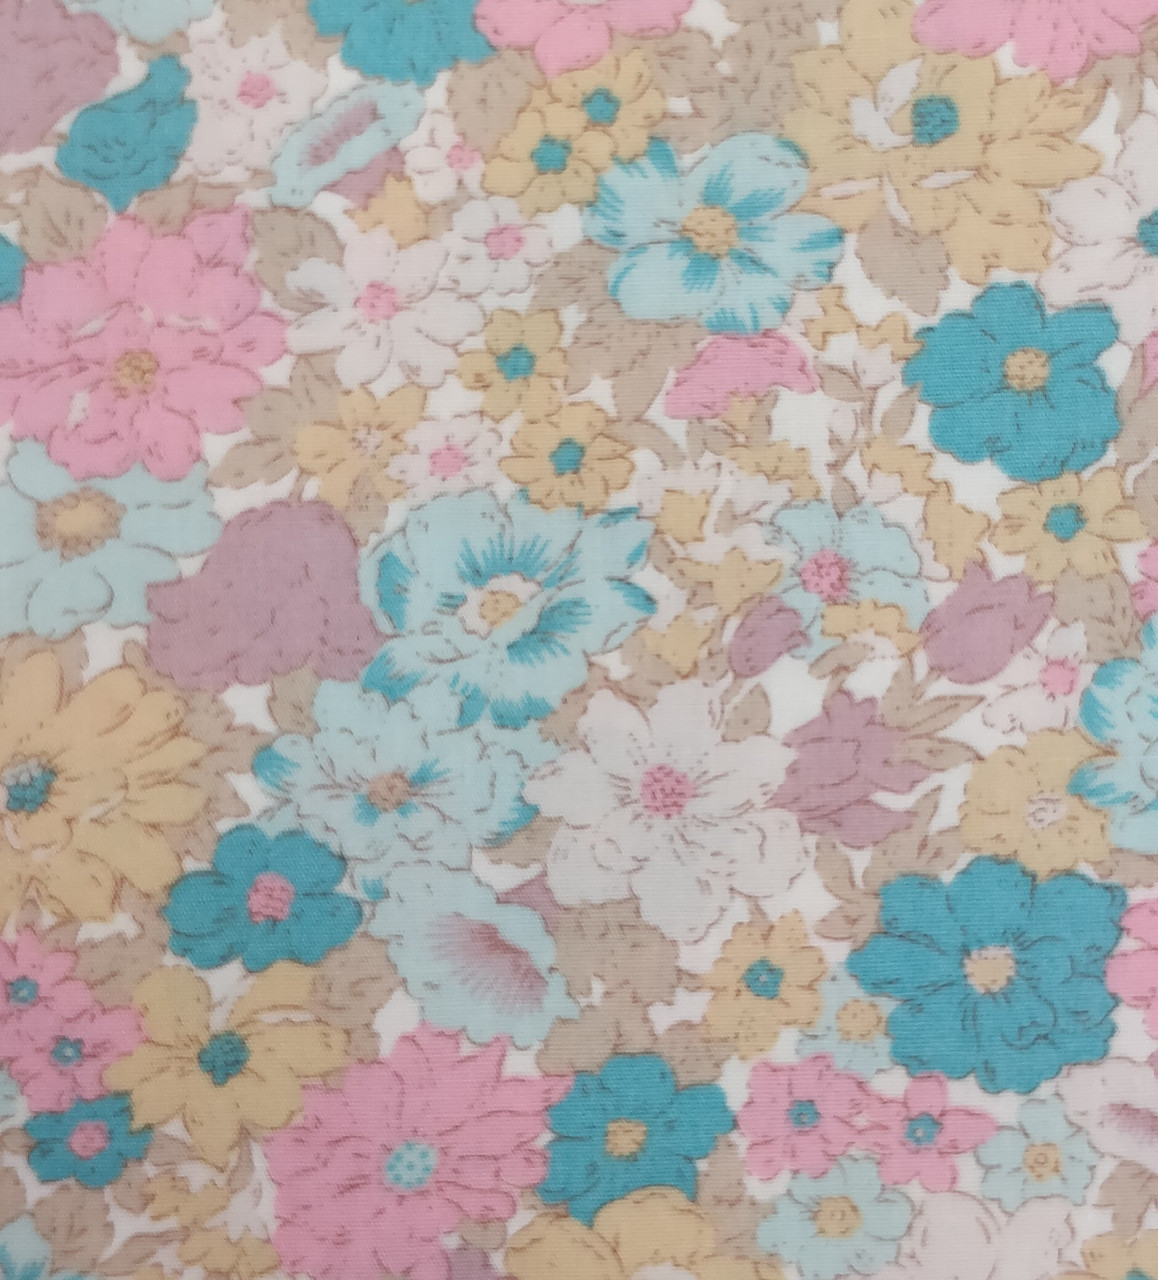 Rose & Hubble cotton fabric in pastel shades